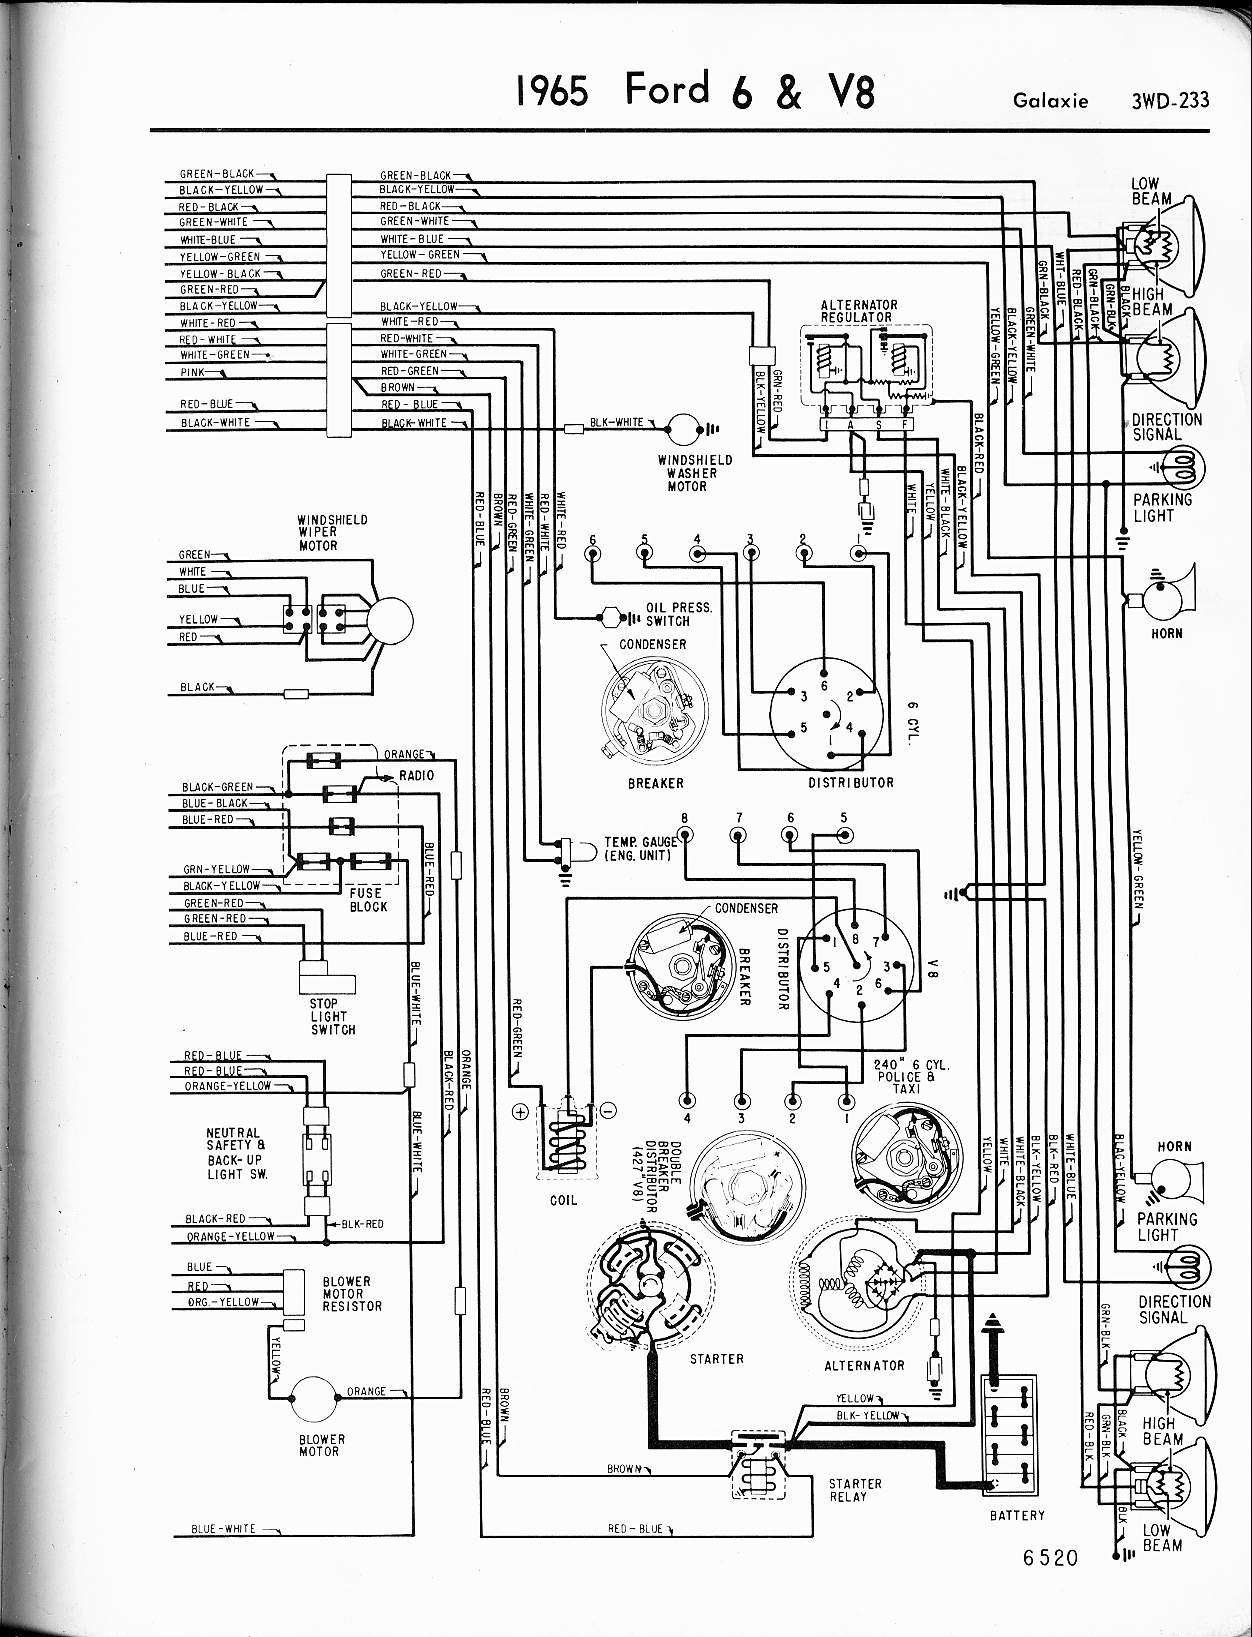 Falcon Ignition Wiring | Wiring Diagram on